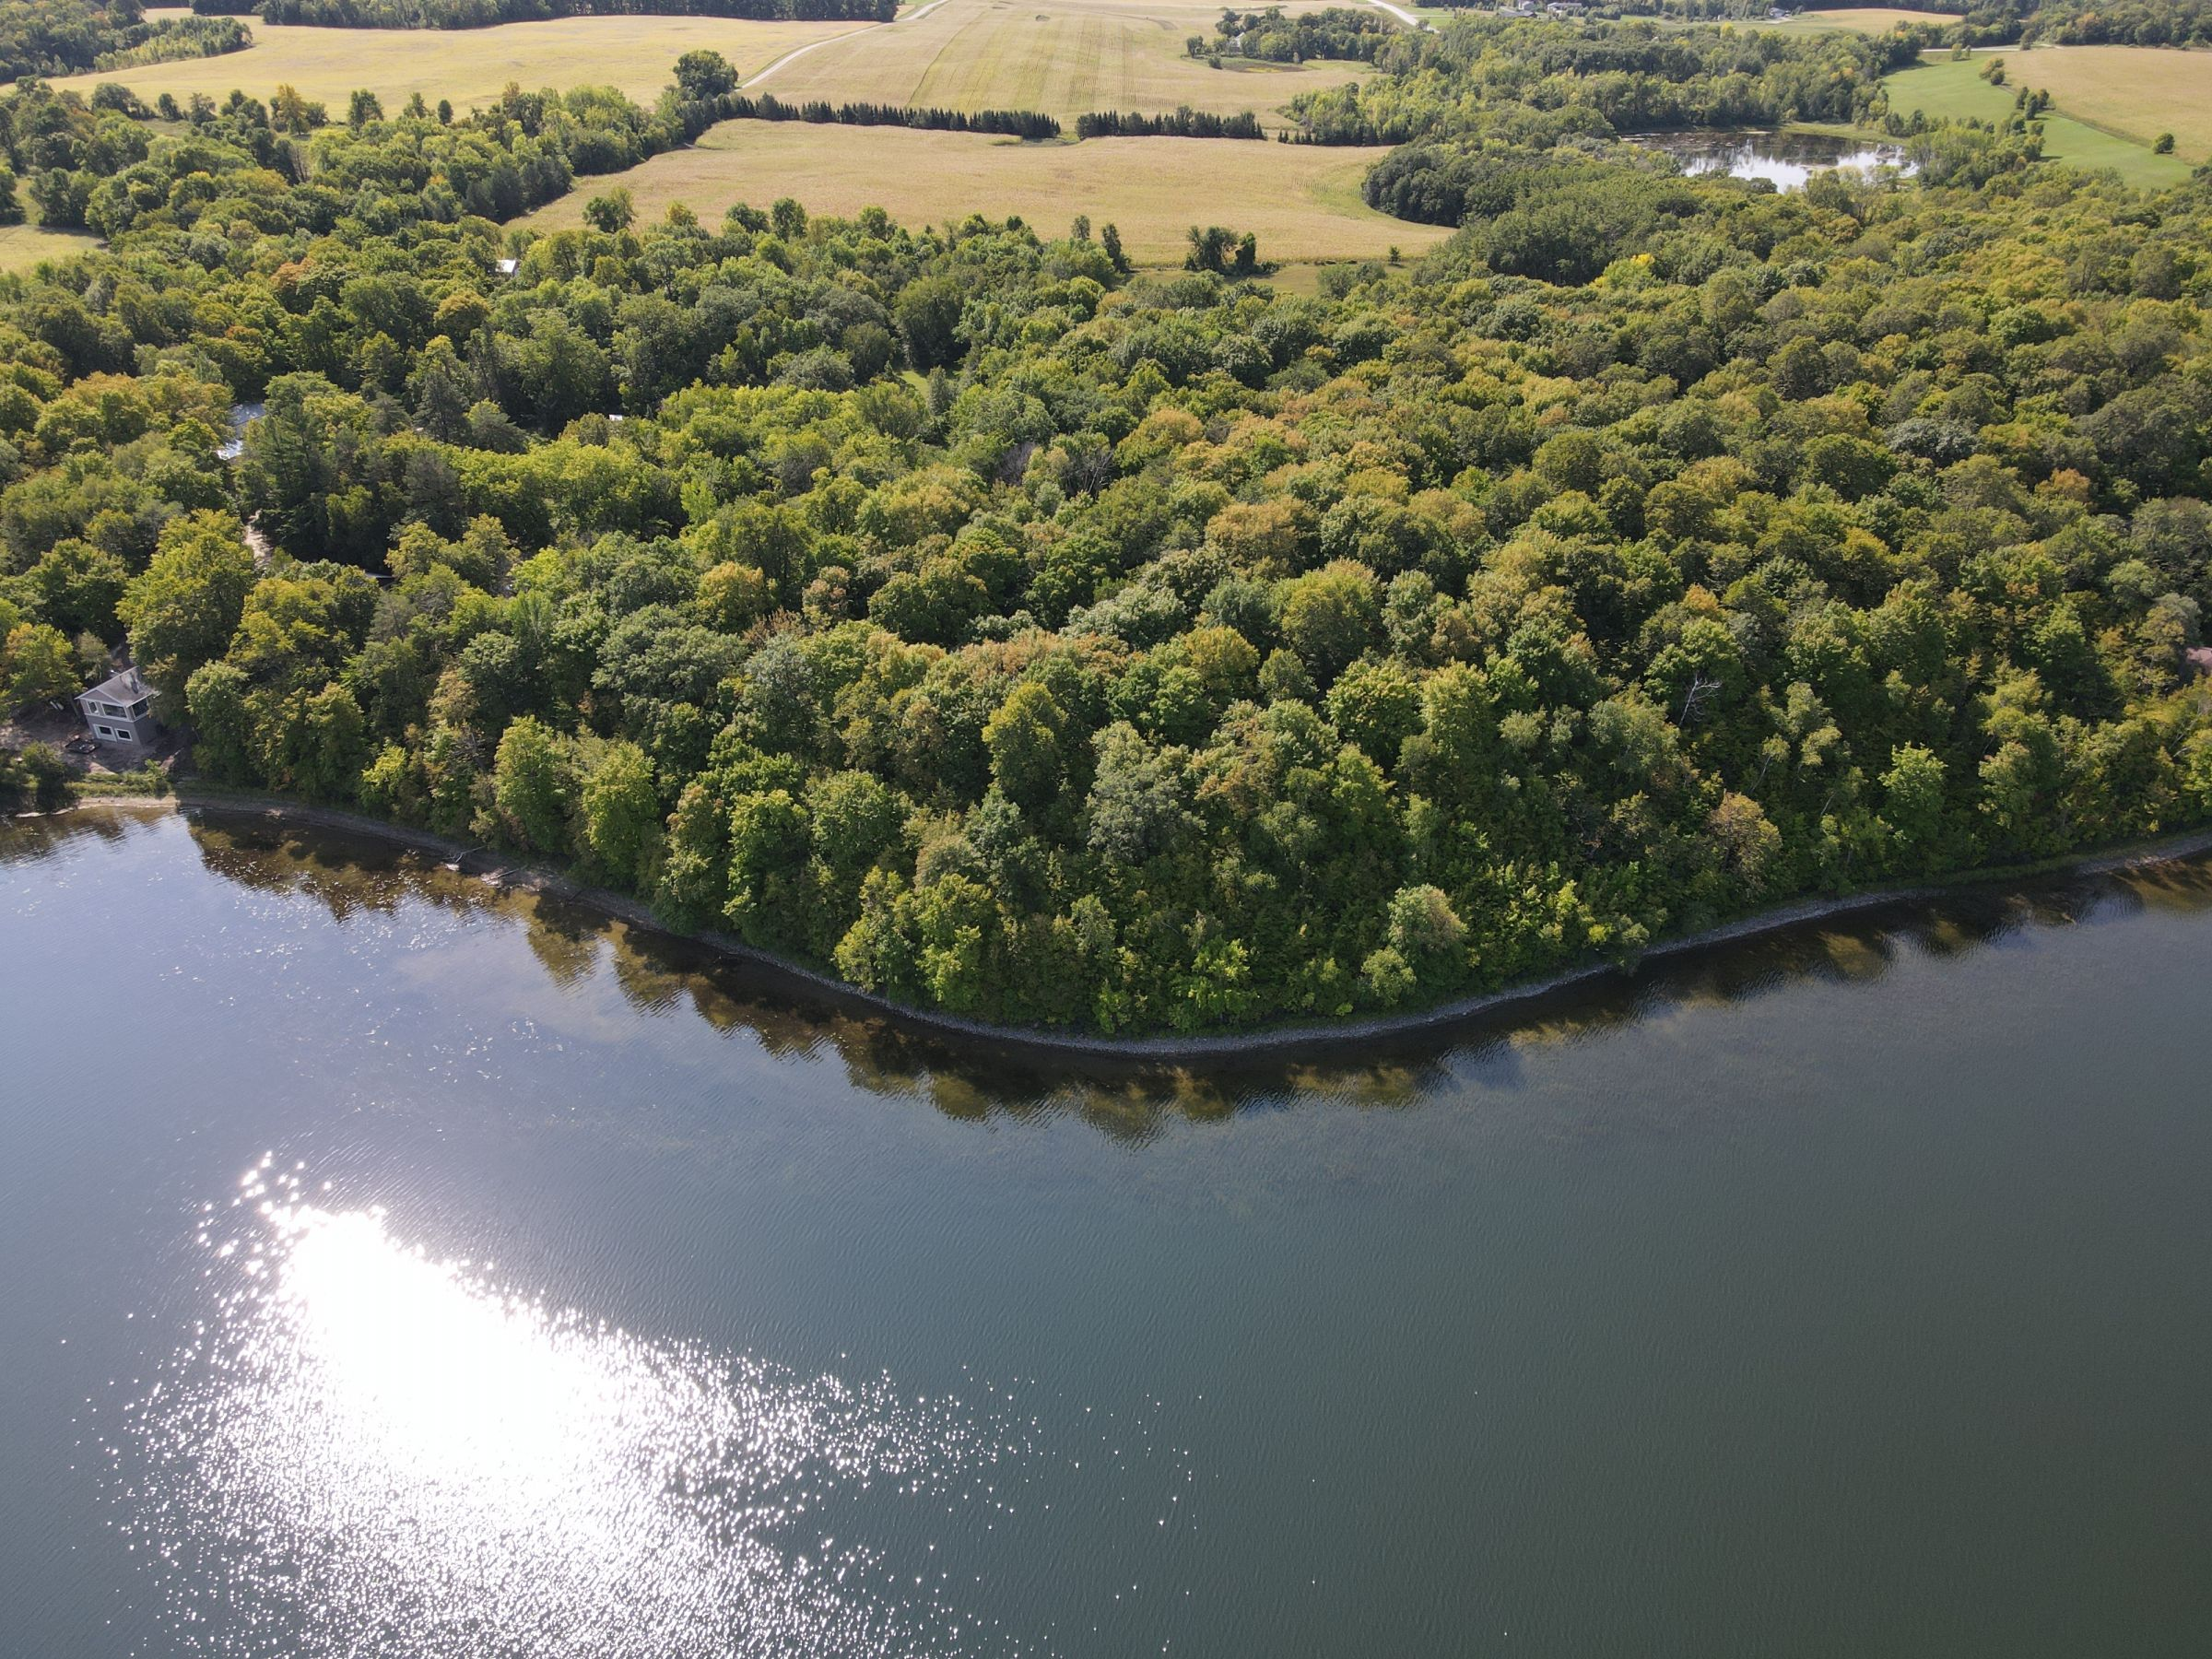 residential-auctions-development-land-commercial-douglas-county-minnesota-40-acres-listing-number-15777-1-2021-09-28-162432.JPG